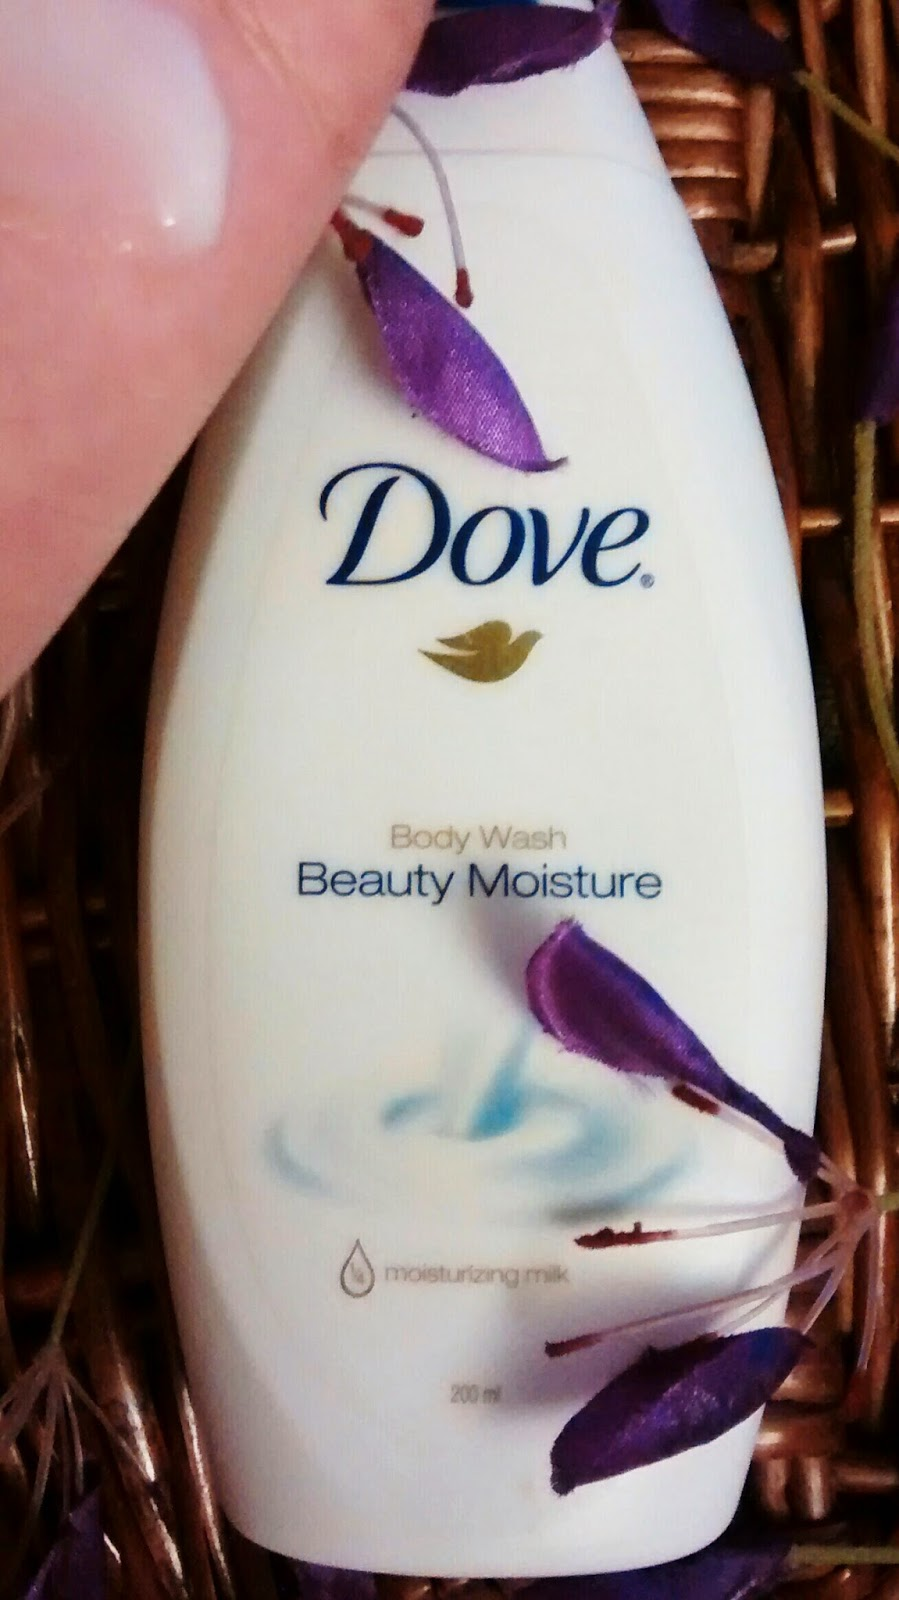 Dove Beauty Moisture Body Wash